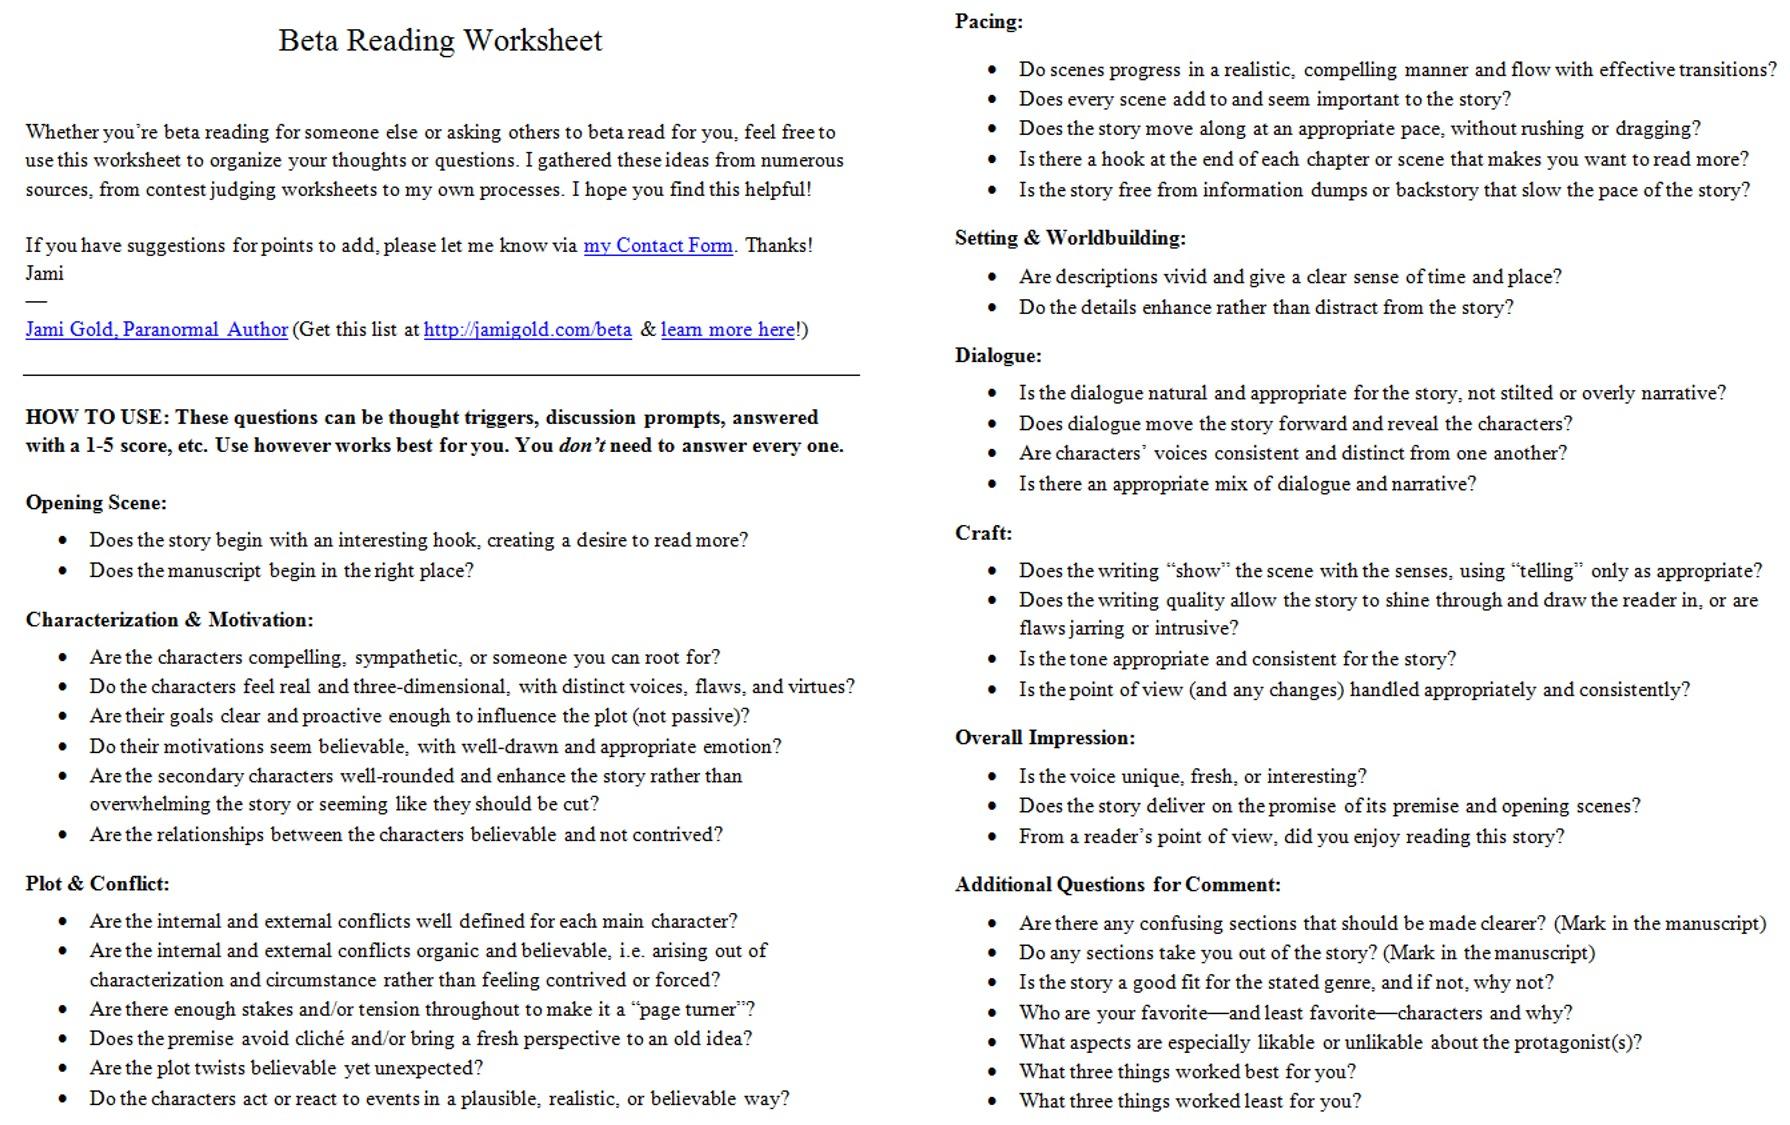 Aldiablosus  Marvelous Worksheets For Writers  Jami Gold Paranormal Author With Extraordinary Screen Shot Of The Twopage Beta Reading Worksheet With Breathtaking Number Words   Worksheets Also Cbt Worksheets For Adults In Addition Anger Management Worksheet For Youth And Syllables Worksheet Ks As Well As Math Worksheets Go Answers Additionally Reading Comprehension For Adults Free Worksheets From Jamigoldcom With Aldiablosus  Extraordinary Worksheets For Writers  Jami Gold Paranormal Author With Breathtaking Screen Shot Of The Twopage Beta Reading Worksheet And Marvelous Number Words   Worksheets Also Cbt Worksheets For Adults In Addition Anger Management Worksheet For Youth From Jamigoldcom